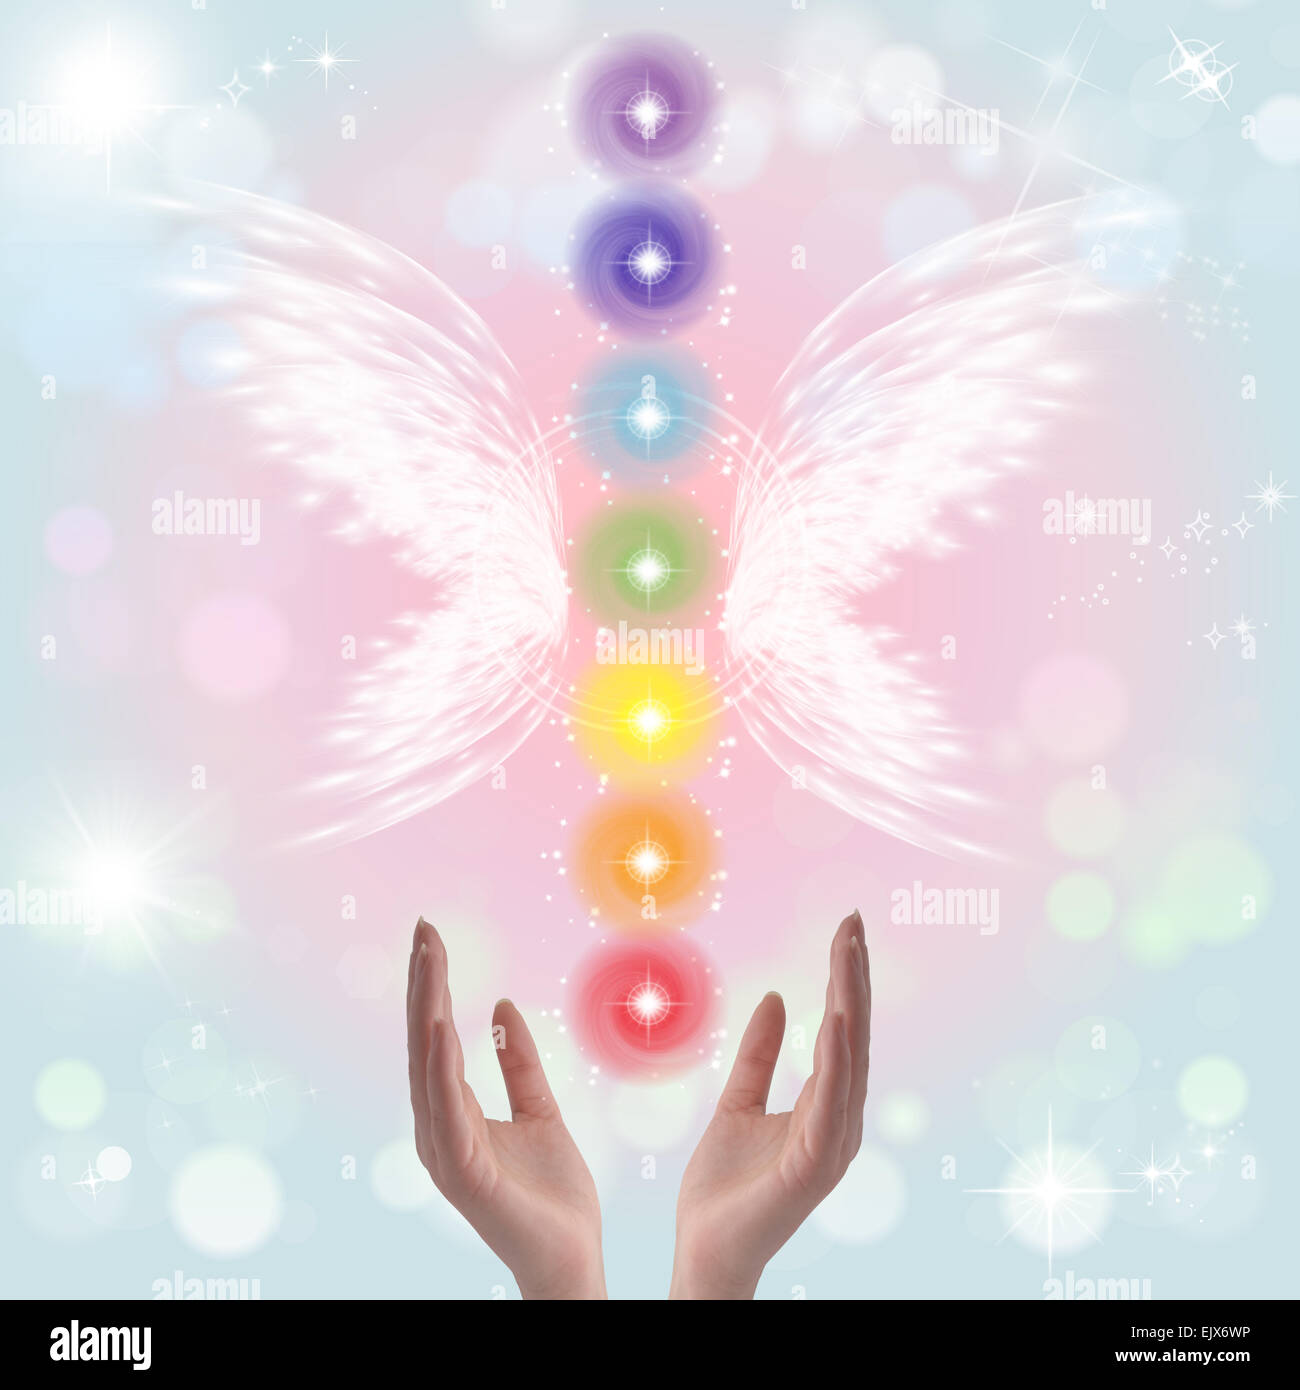 Spirit Of Healing Stock Photos & Spirit Of Healing Stock Images - Alamy